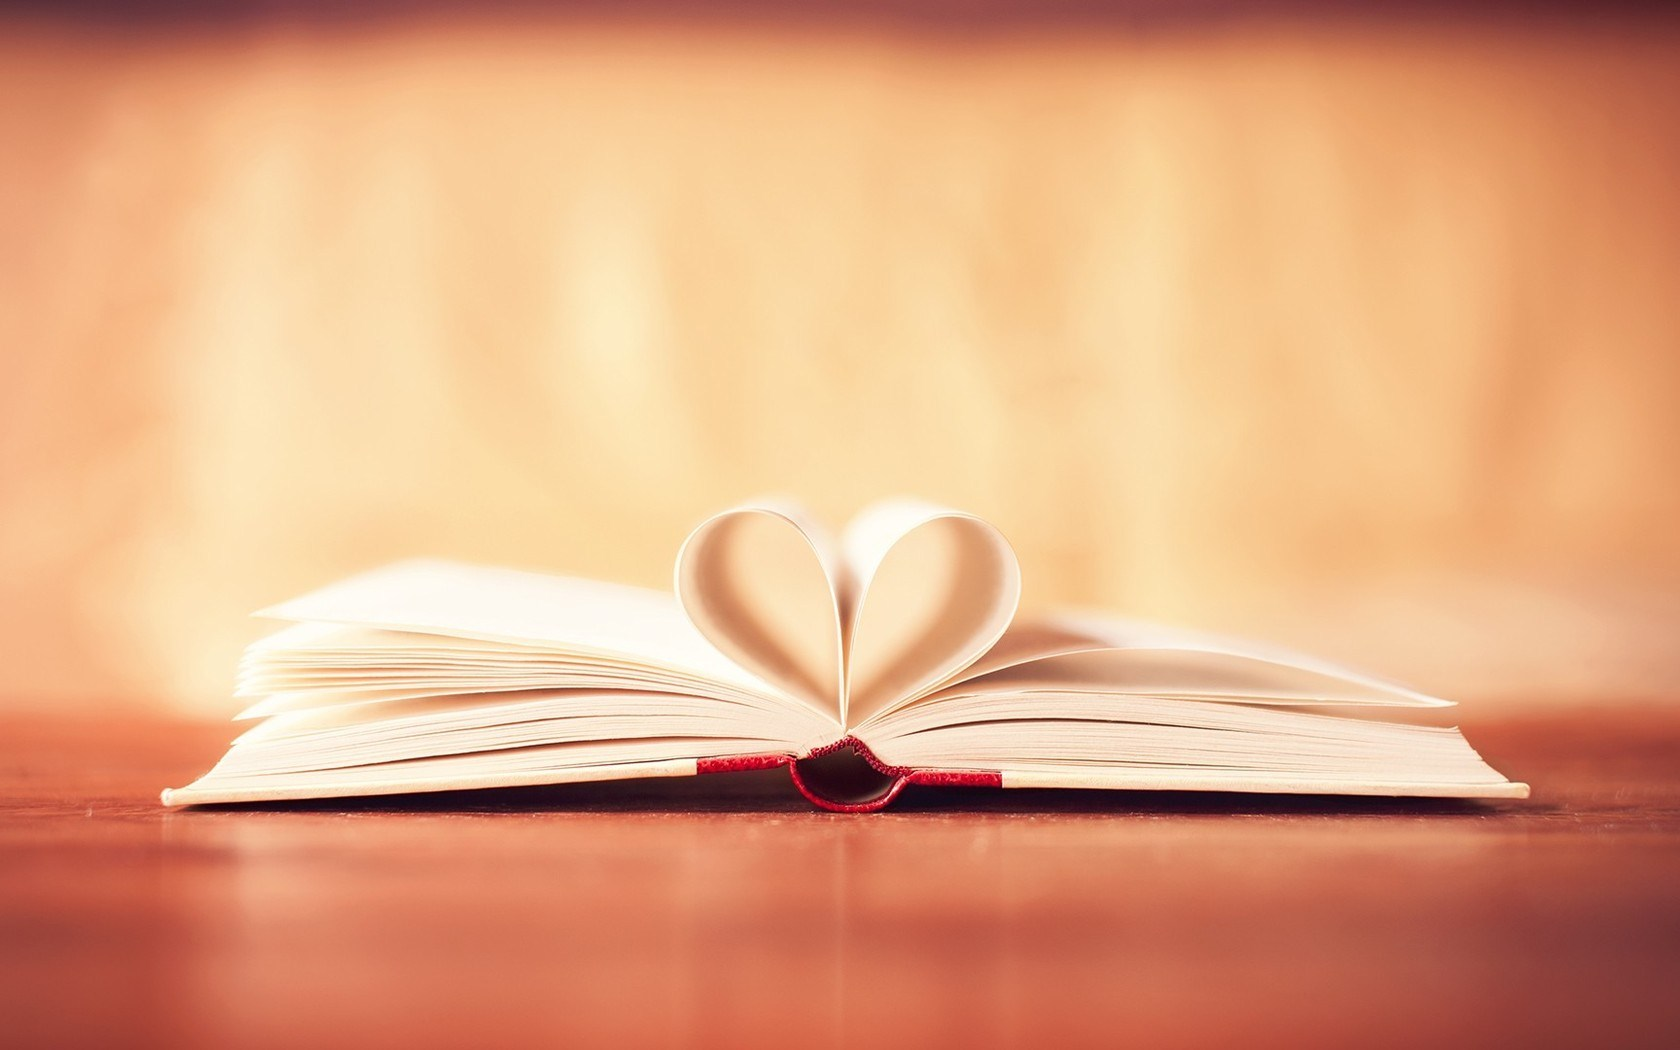 Books Heart Mood